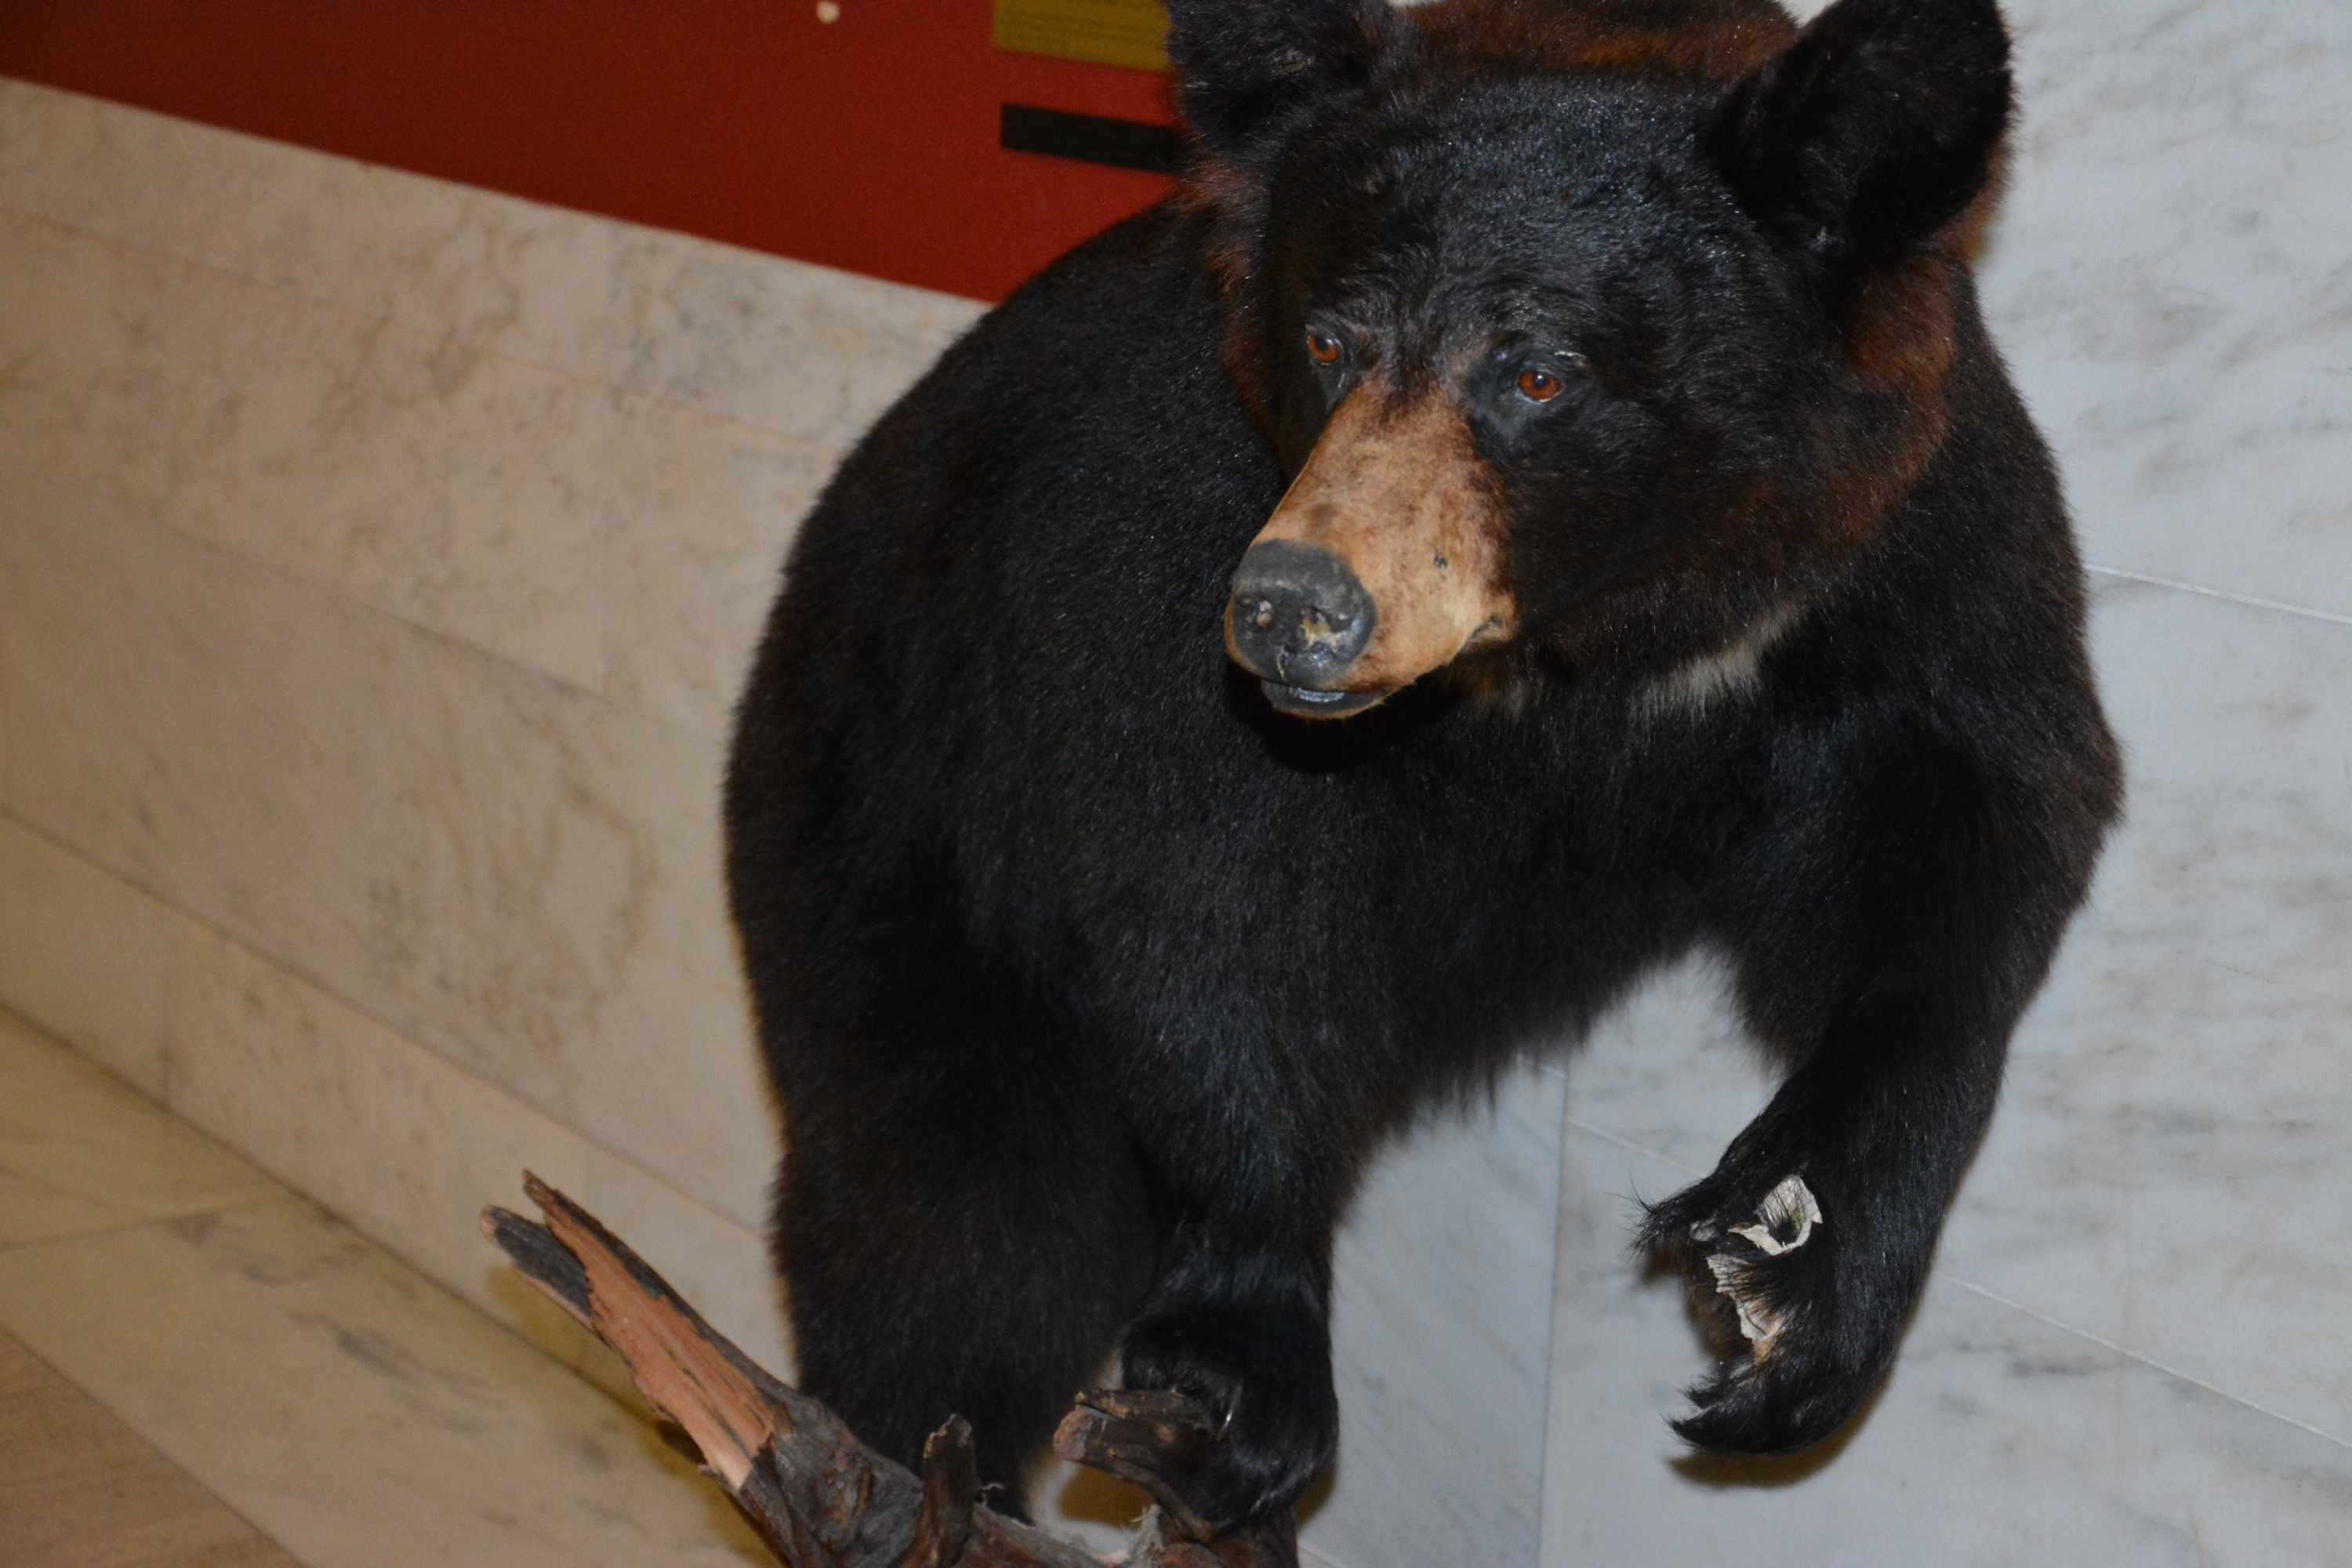 Officials in Morrisey's office noticed Aug. 5 that the older bear's paw was missing. The new bear will join this one.